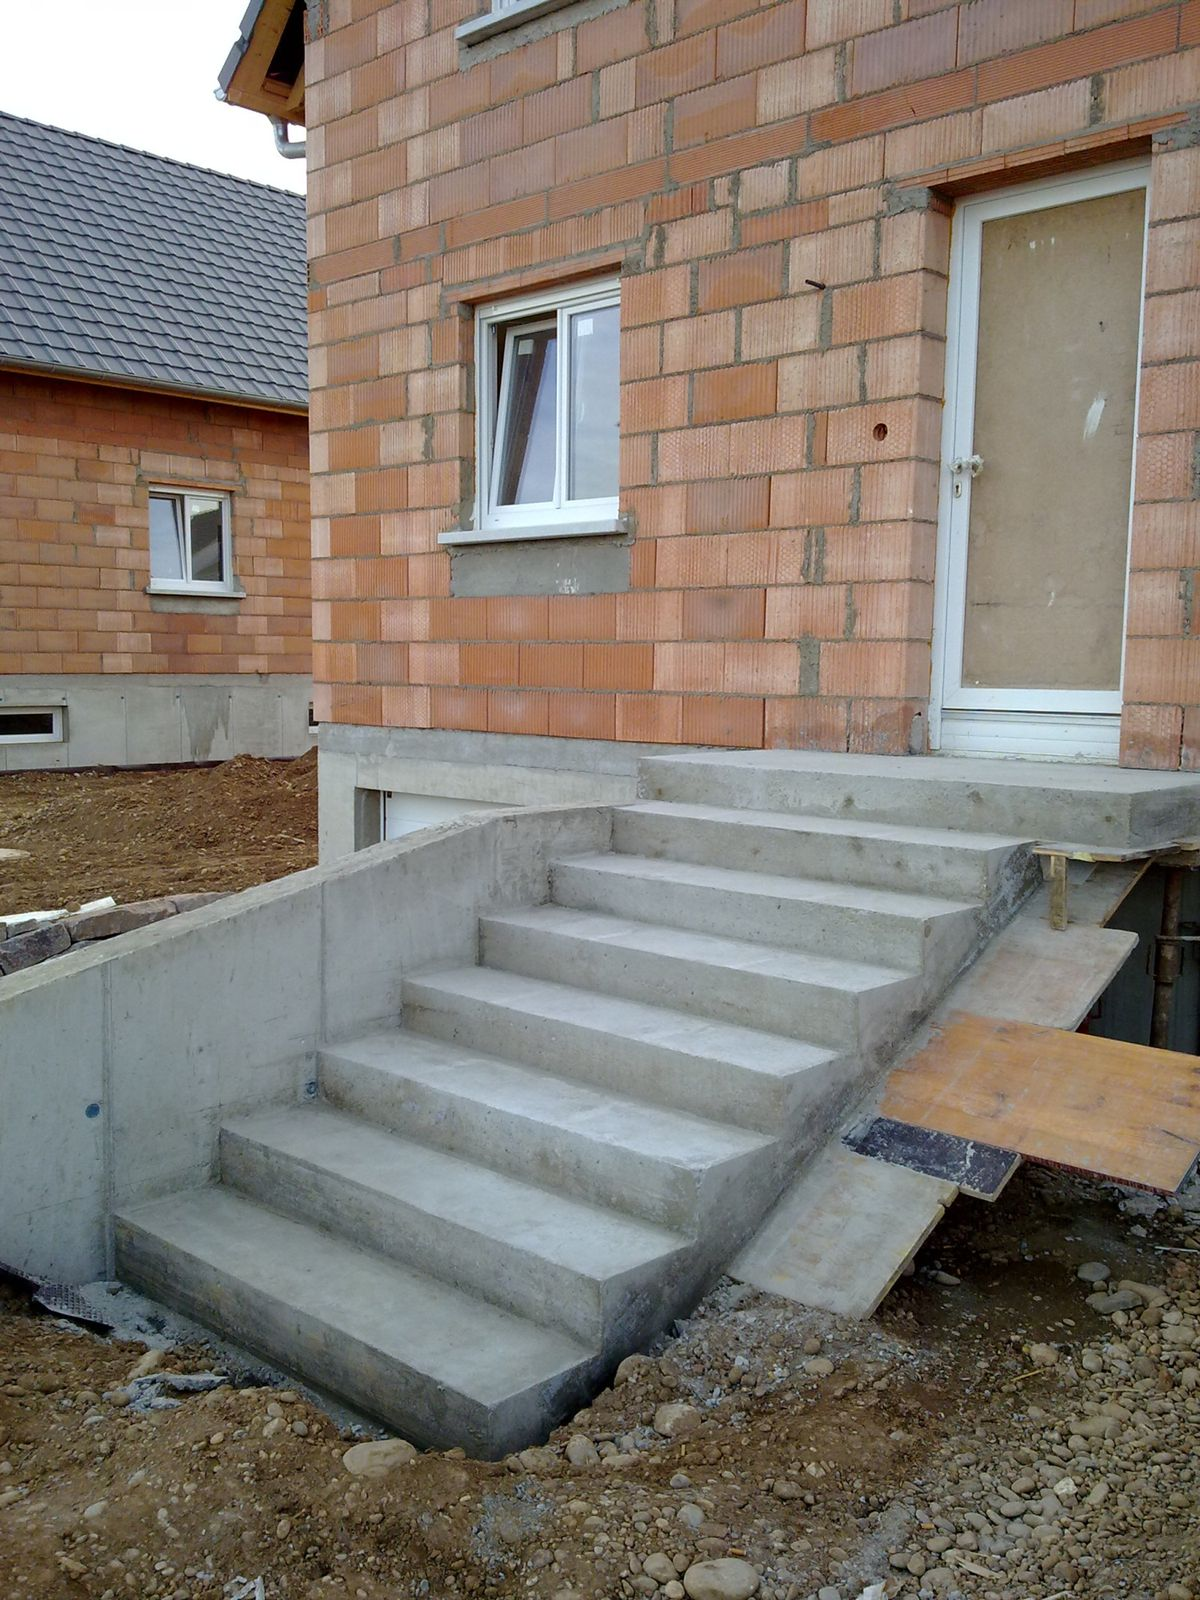 D coffrage escalier ext rieur j 206 la construction de for Escalier exterieur entree maison